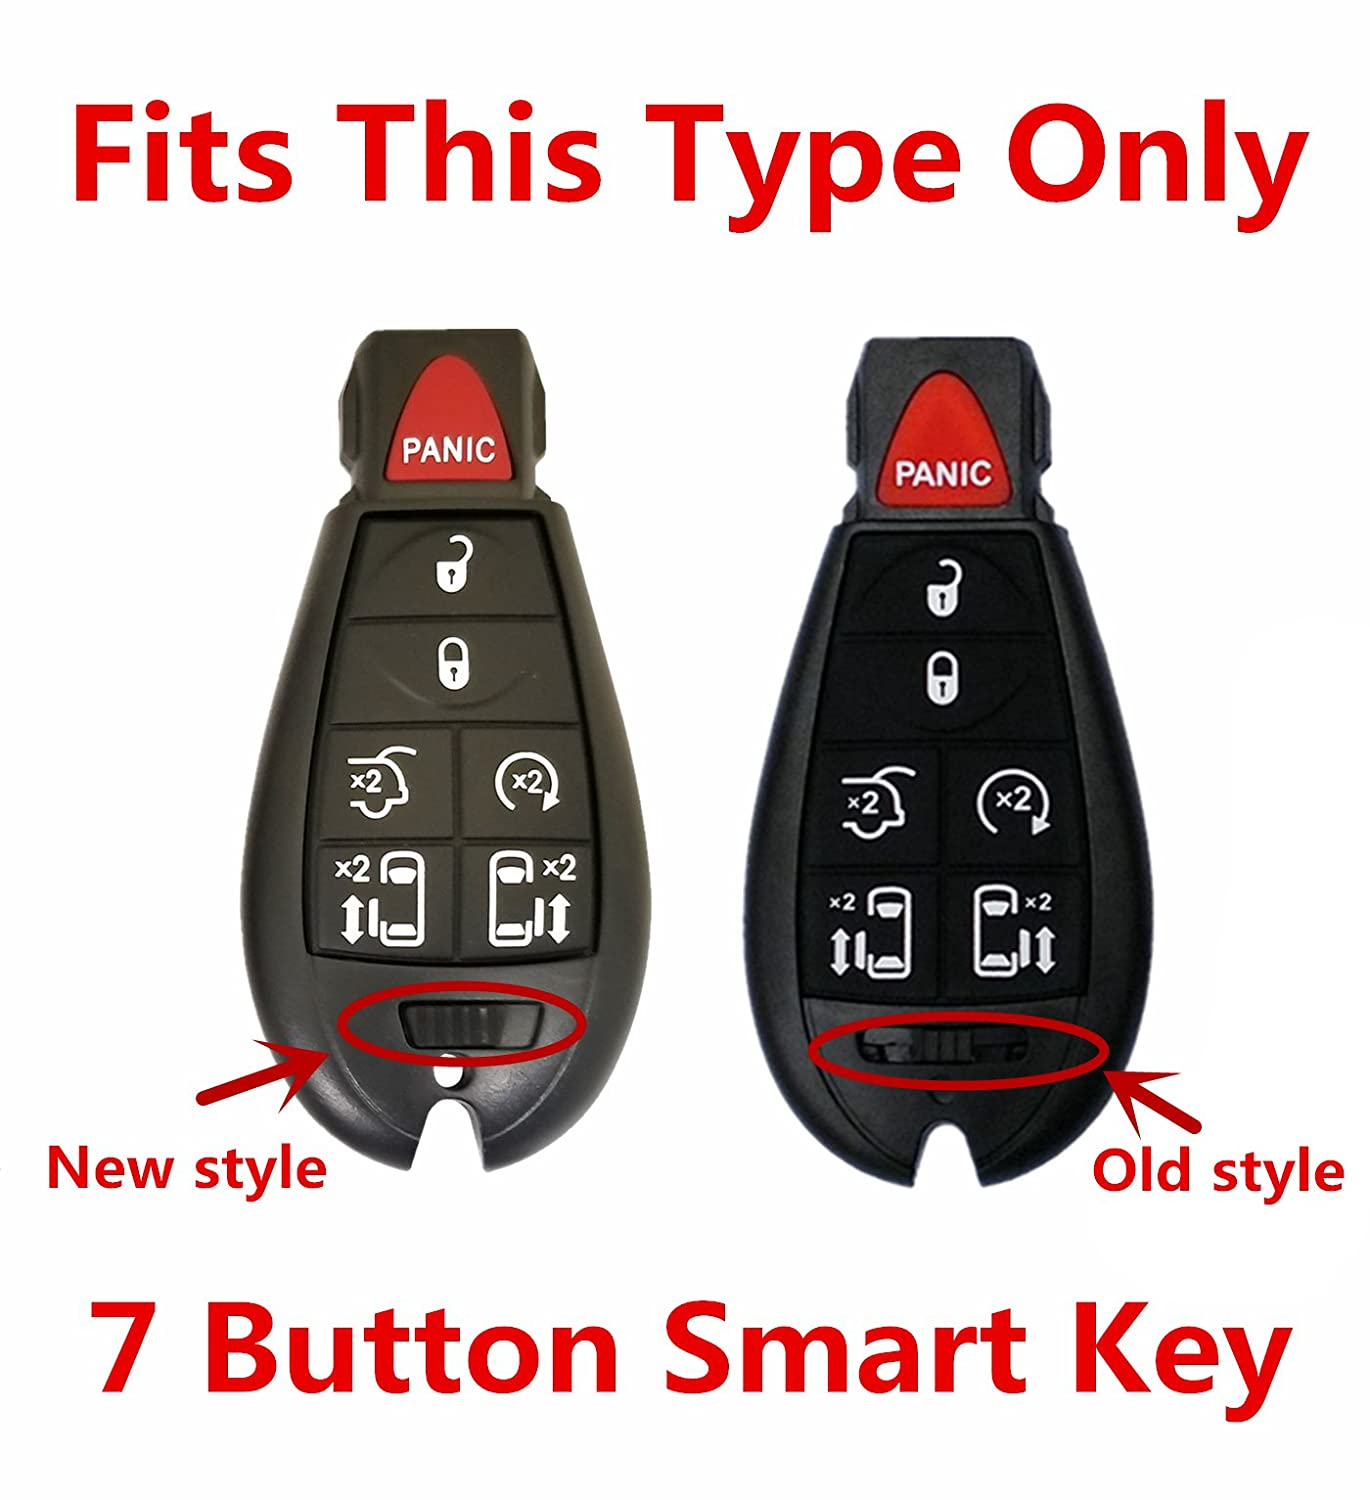 Rpkey Silicone Keyless Entry Remote Control Key Fob Cover Case protector For Chrysler Town /& Country Dodge Grand Caravan Volkswagen Routan M3N5WY783X 2701A-C01C 68043594AA 68043594 AA ASD